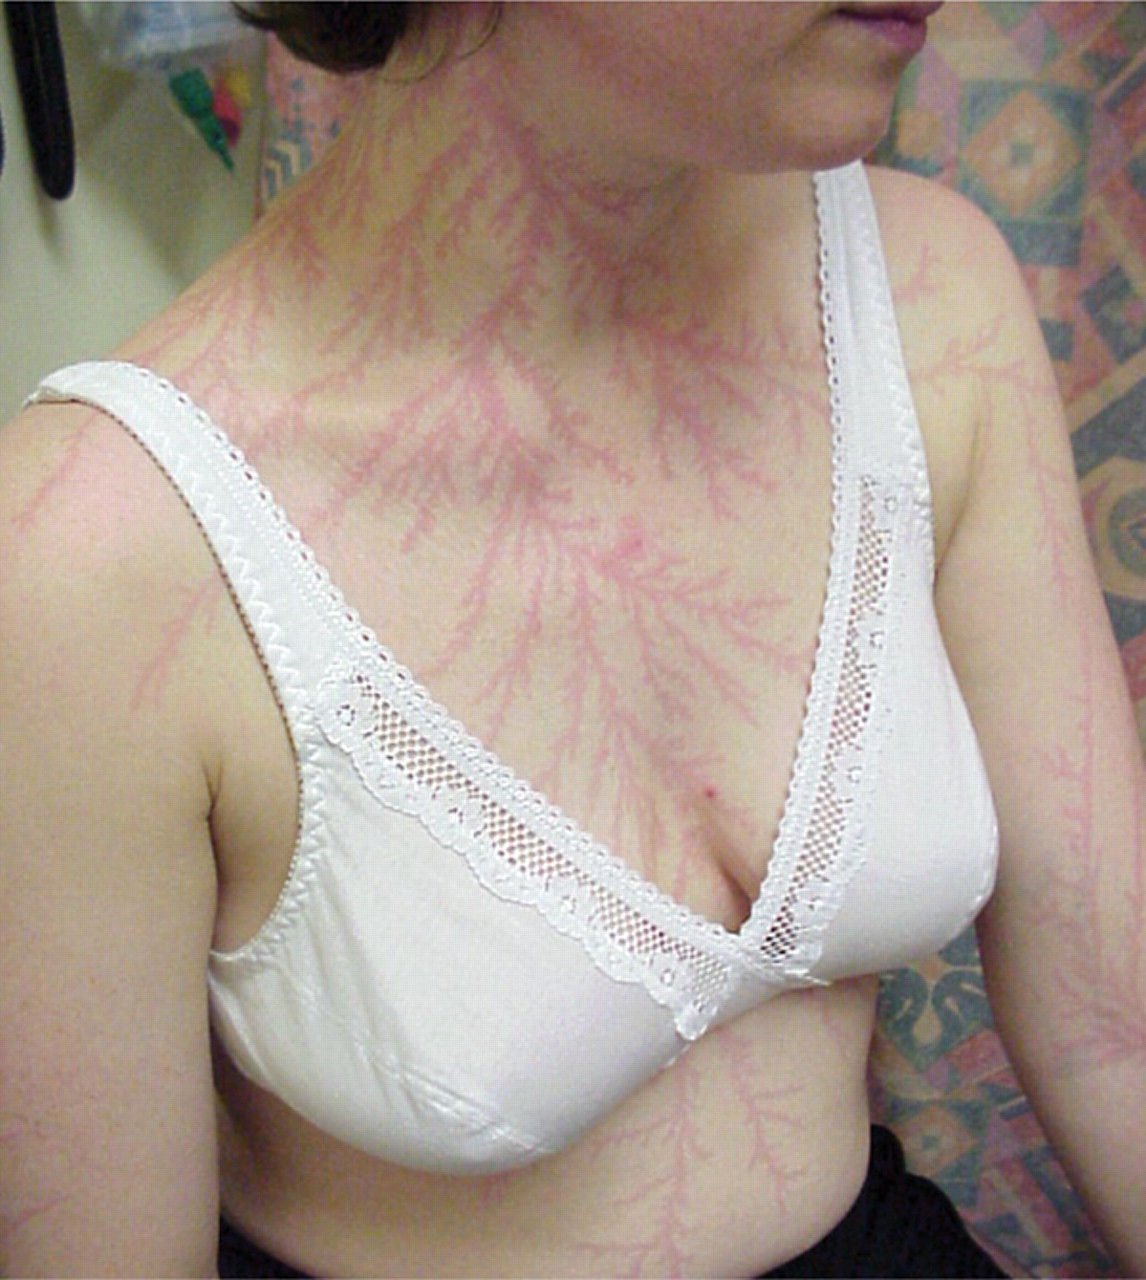 Lichtenberg figures may also appear on the skin of lightning strike victims. These are reddish, fernlike patterns that may persist for hours or days. They are also a useful indicator for medical examiners when determining the cause of death. Lichtenberg figures appearing on people are sometimes called  lightning flowers , and they are thought to be caused by the rupture of small capillaries under the skin due to the passage of the lightning current or the shock wave from the lightning discharge as it flashes over the skin. A lightning strike can also create a large Lichtenberg Figure in grass surrounding the point struck. These are sometimes found on golf courses or in grassy meadows.